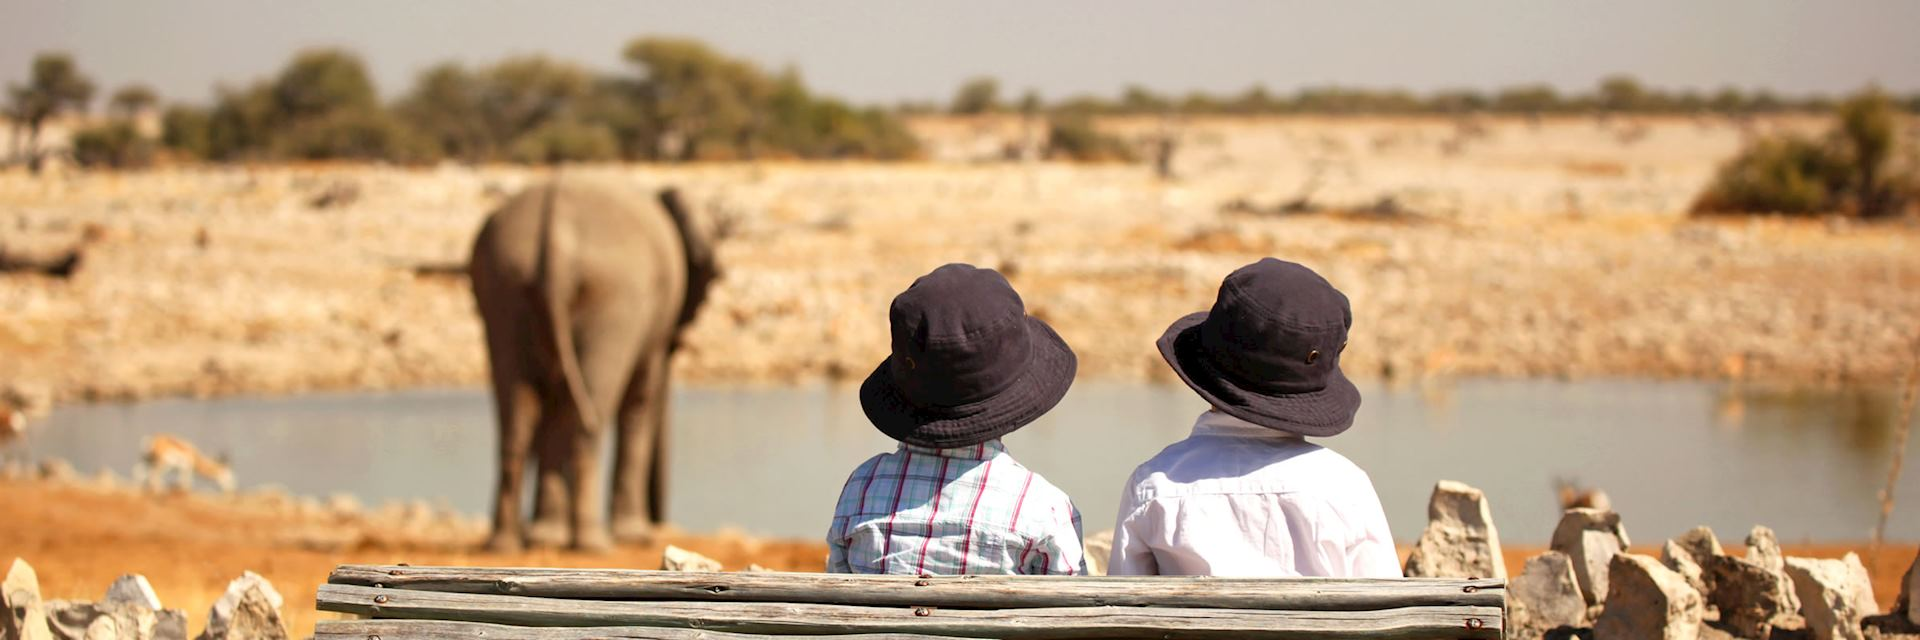 Children at the Okaukuejo Waterhole in Etosha National Park